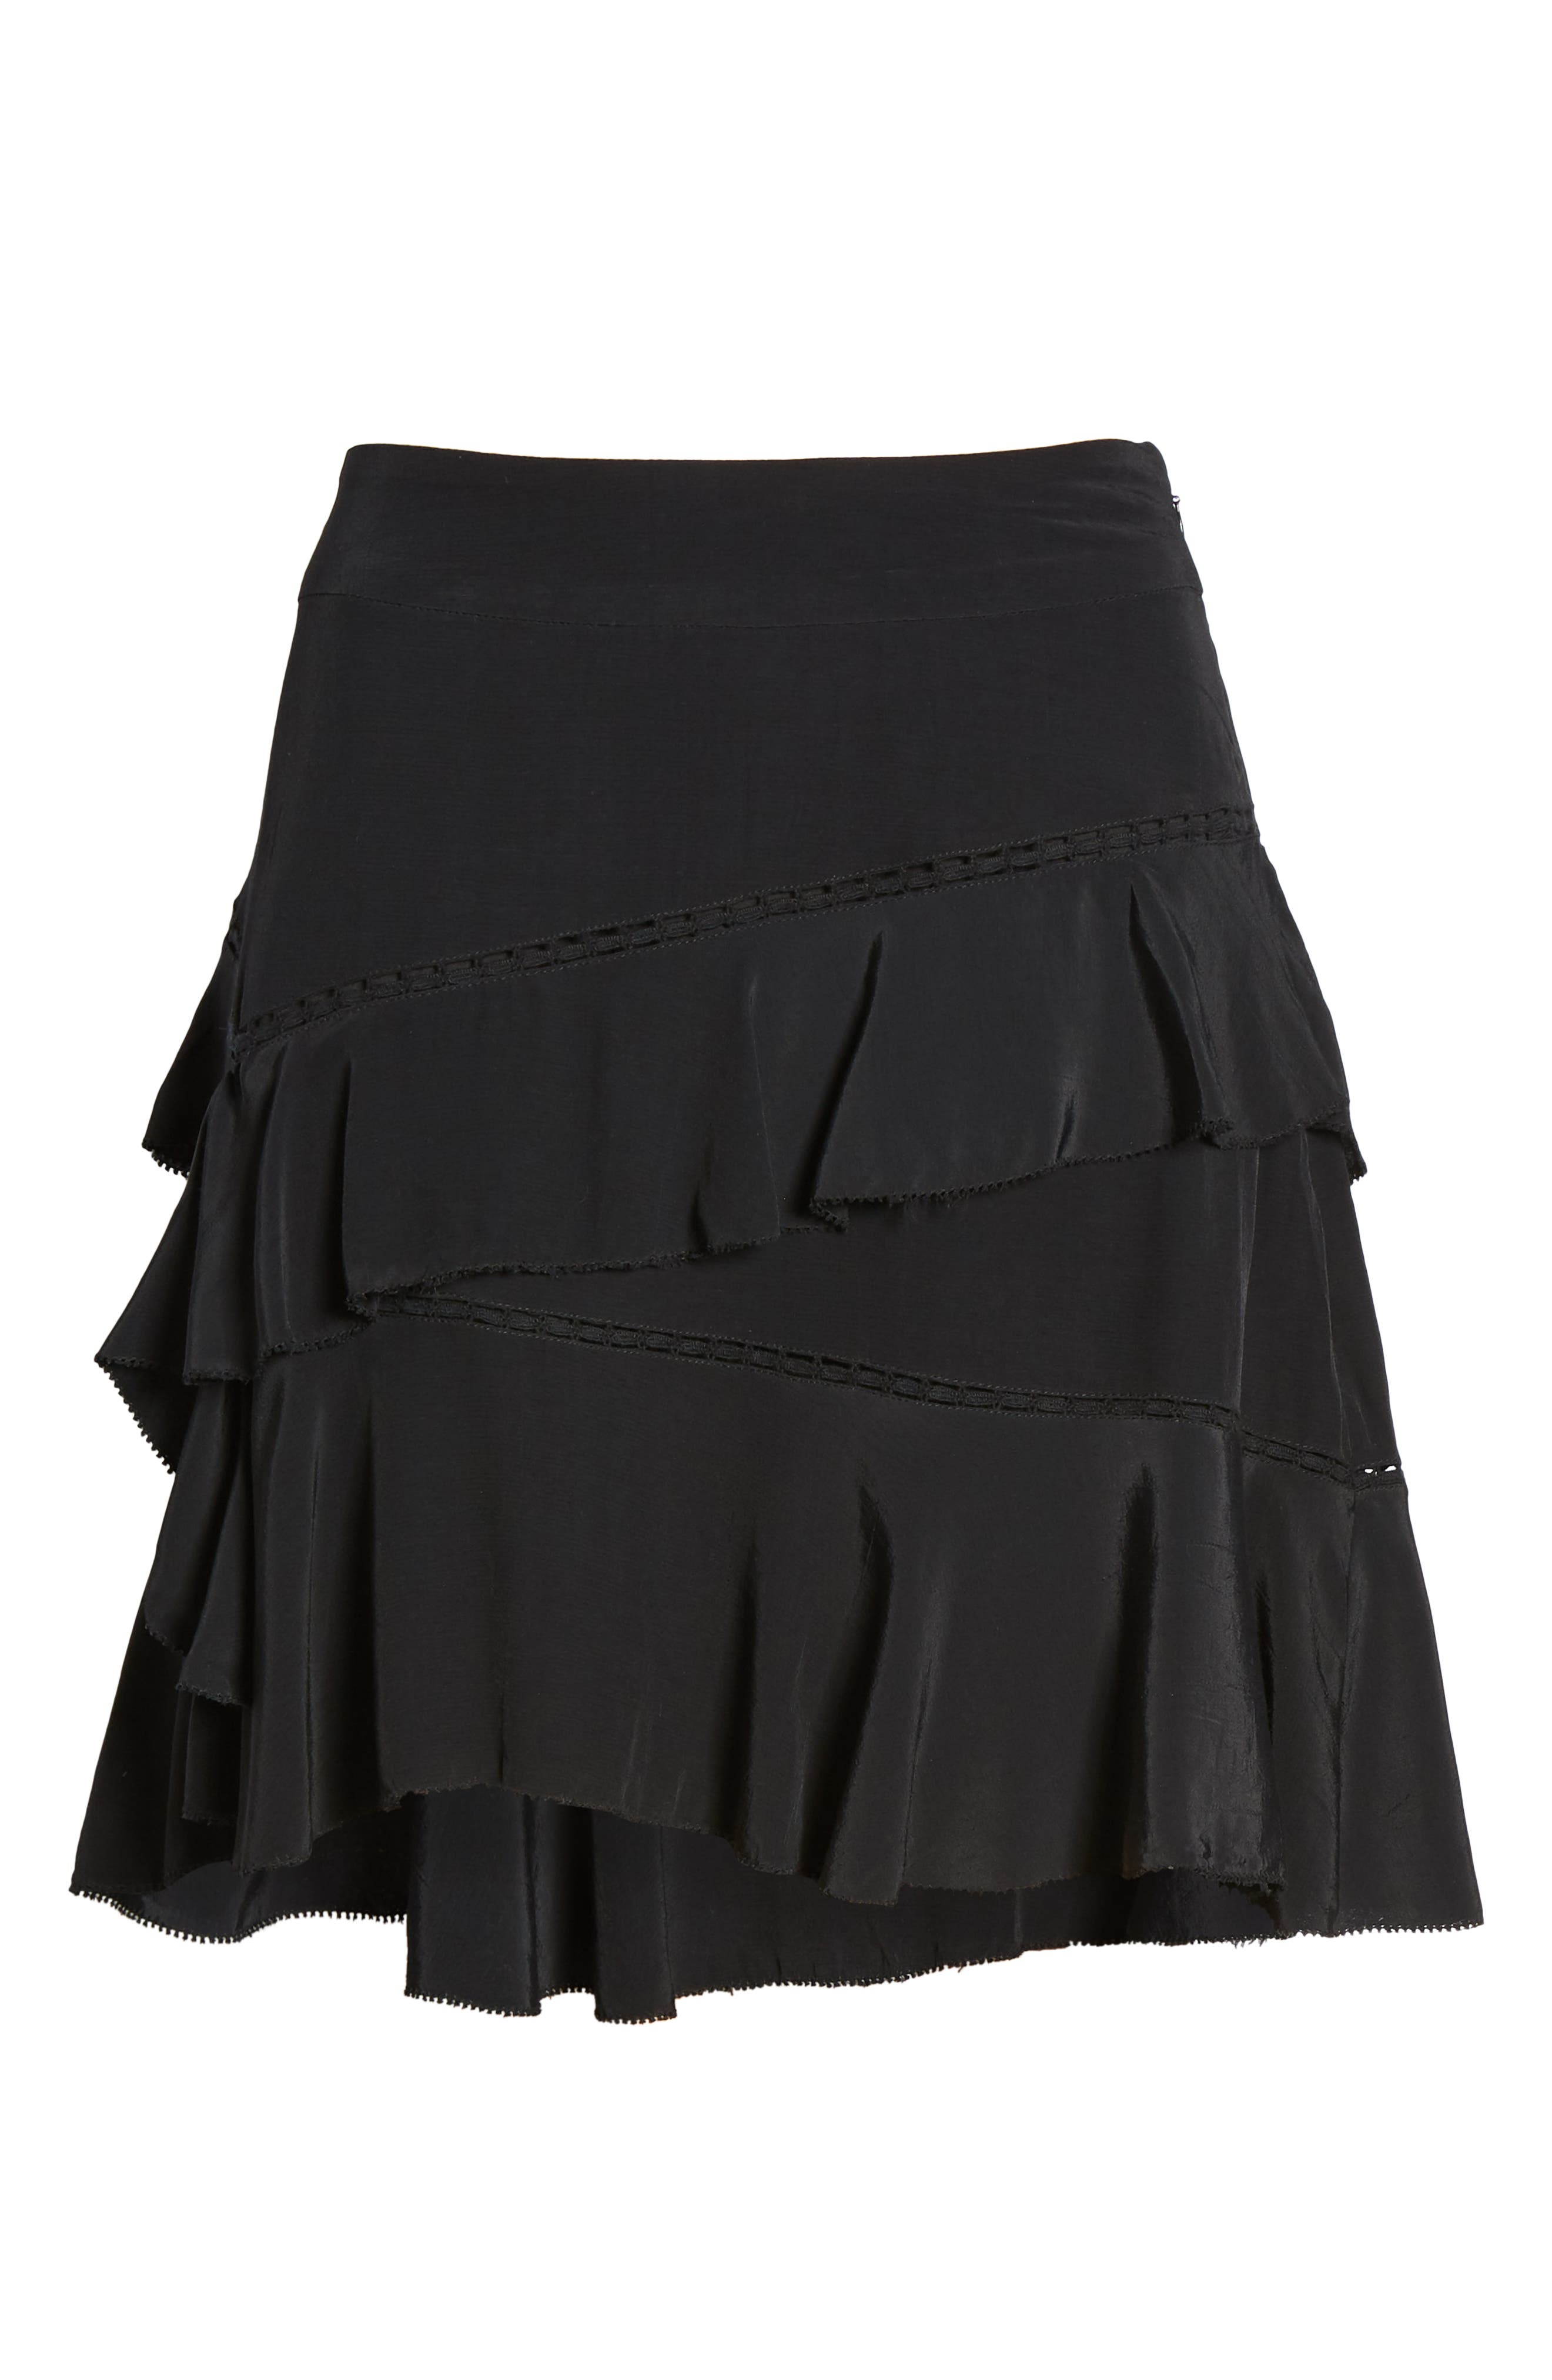 SOMETHING NAVY, Tiered Ruffle High/Low Miniskirt, Alternate thumbnail 8, color, BLACK